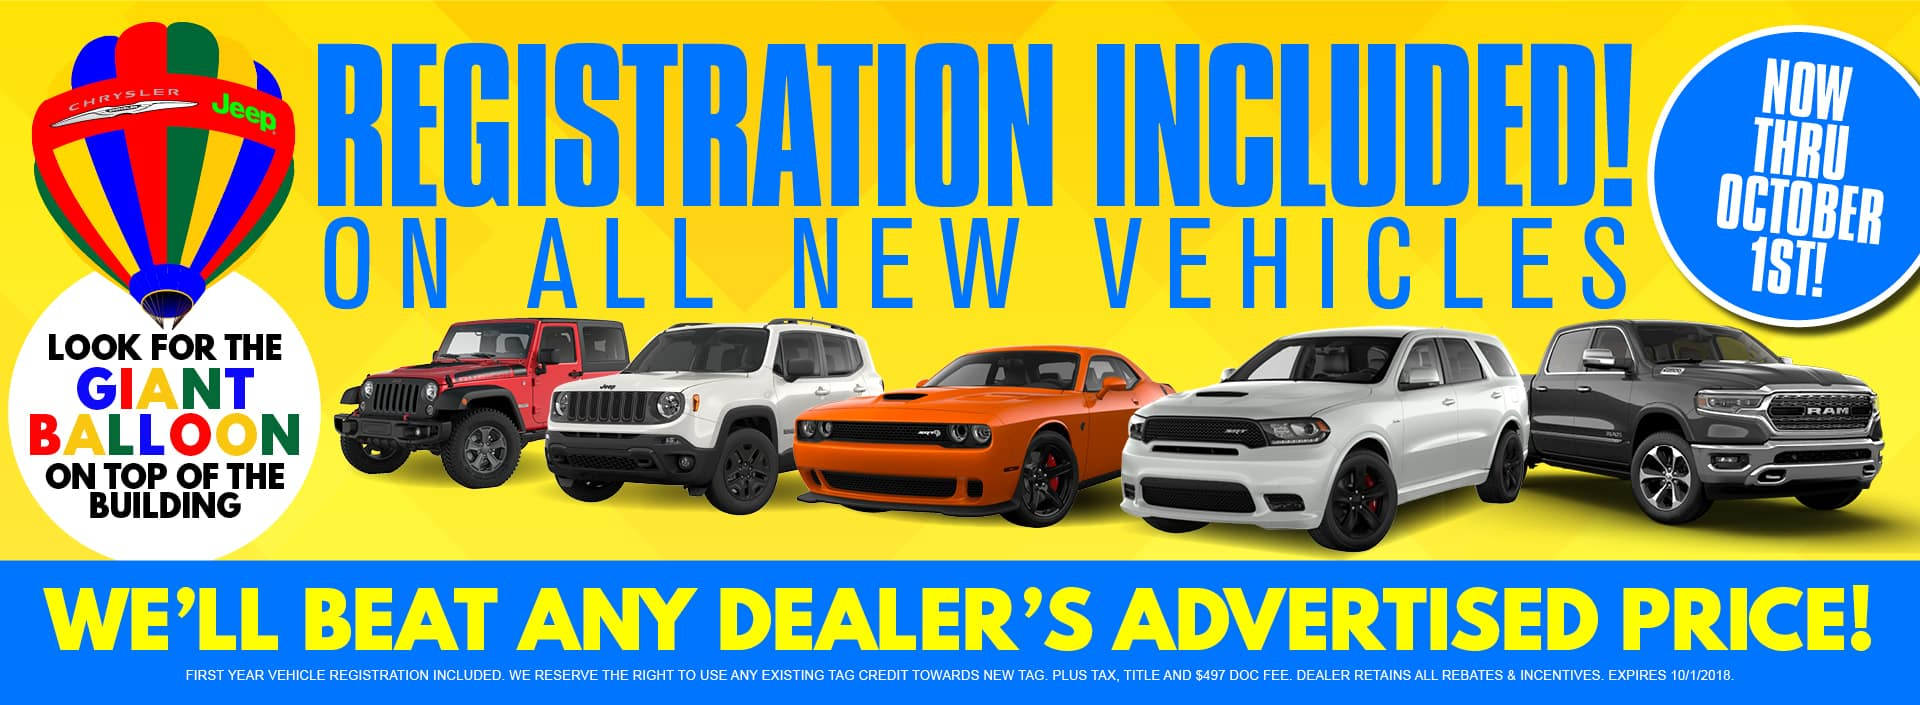 Registration Included on all new vehicles